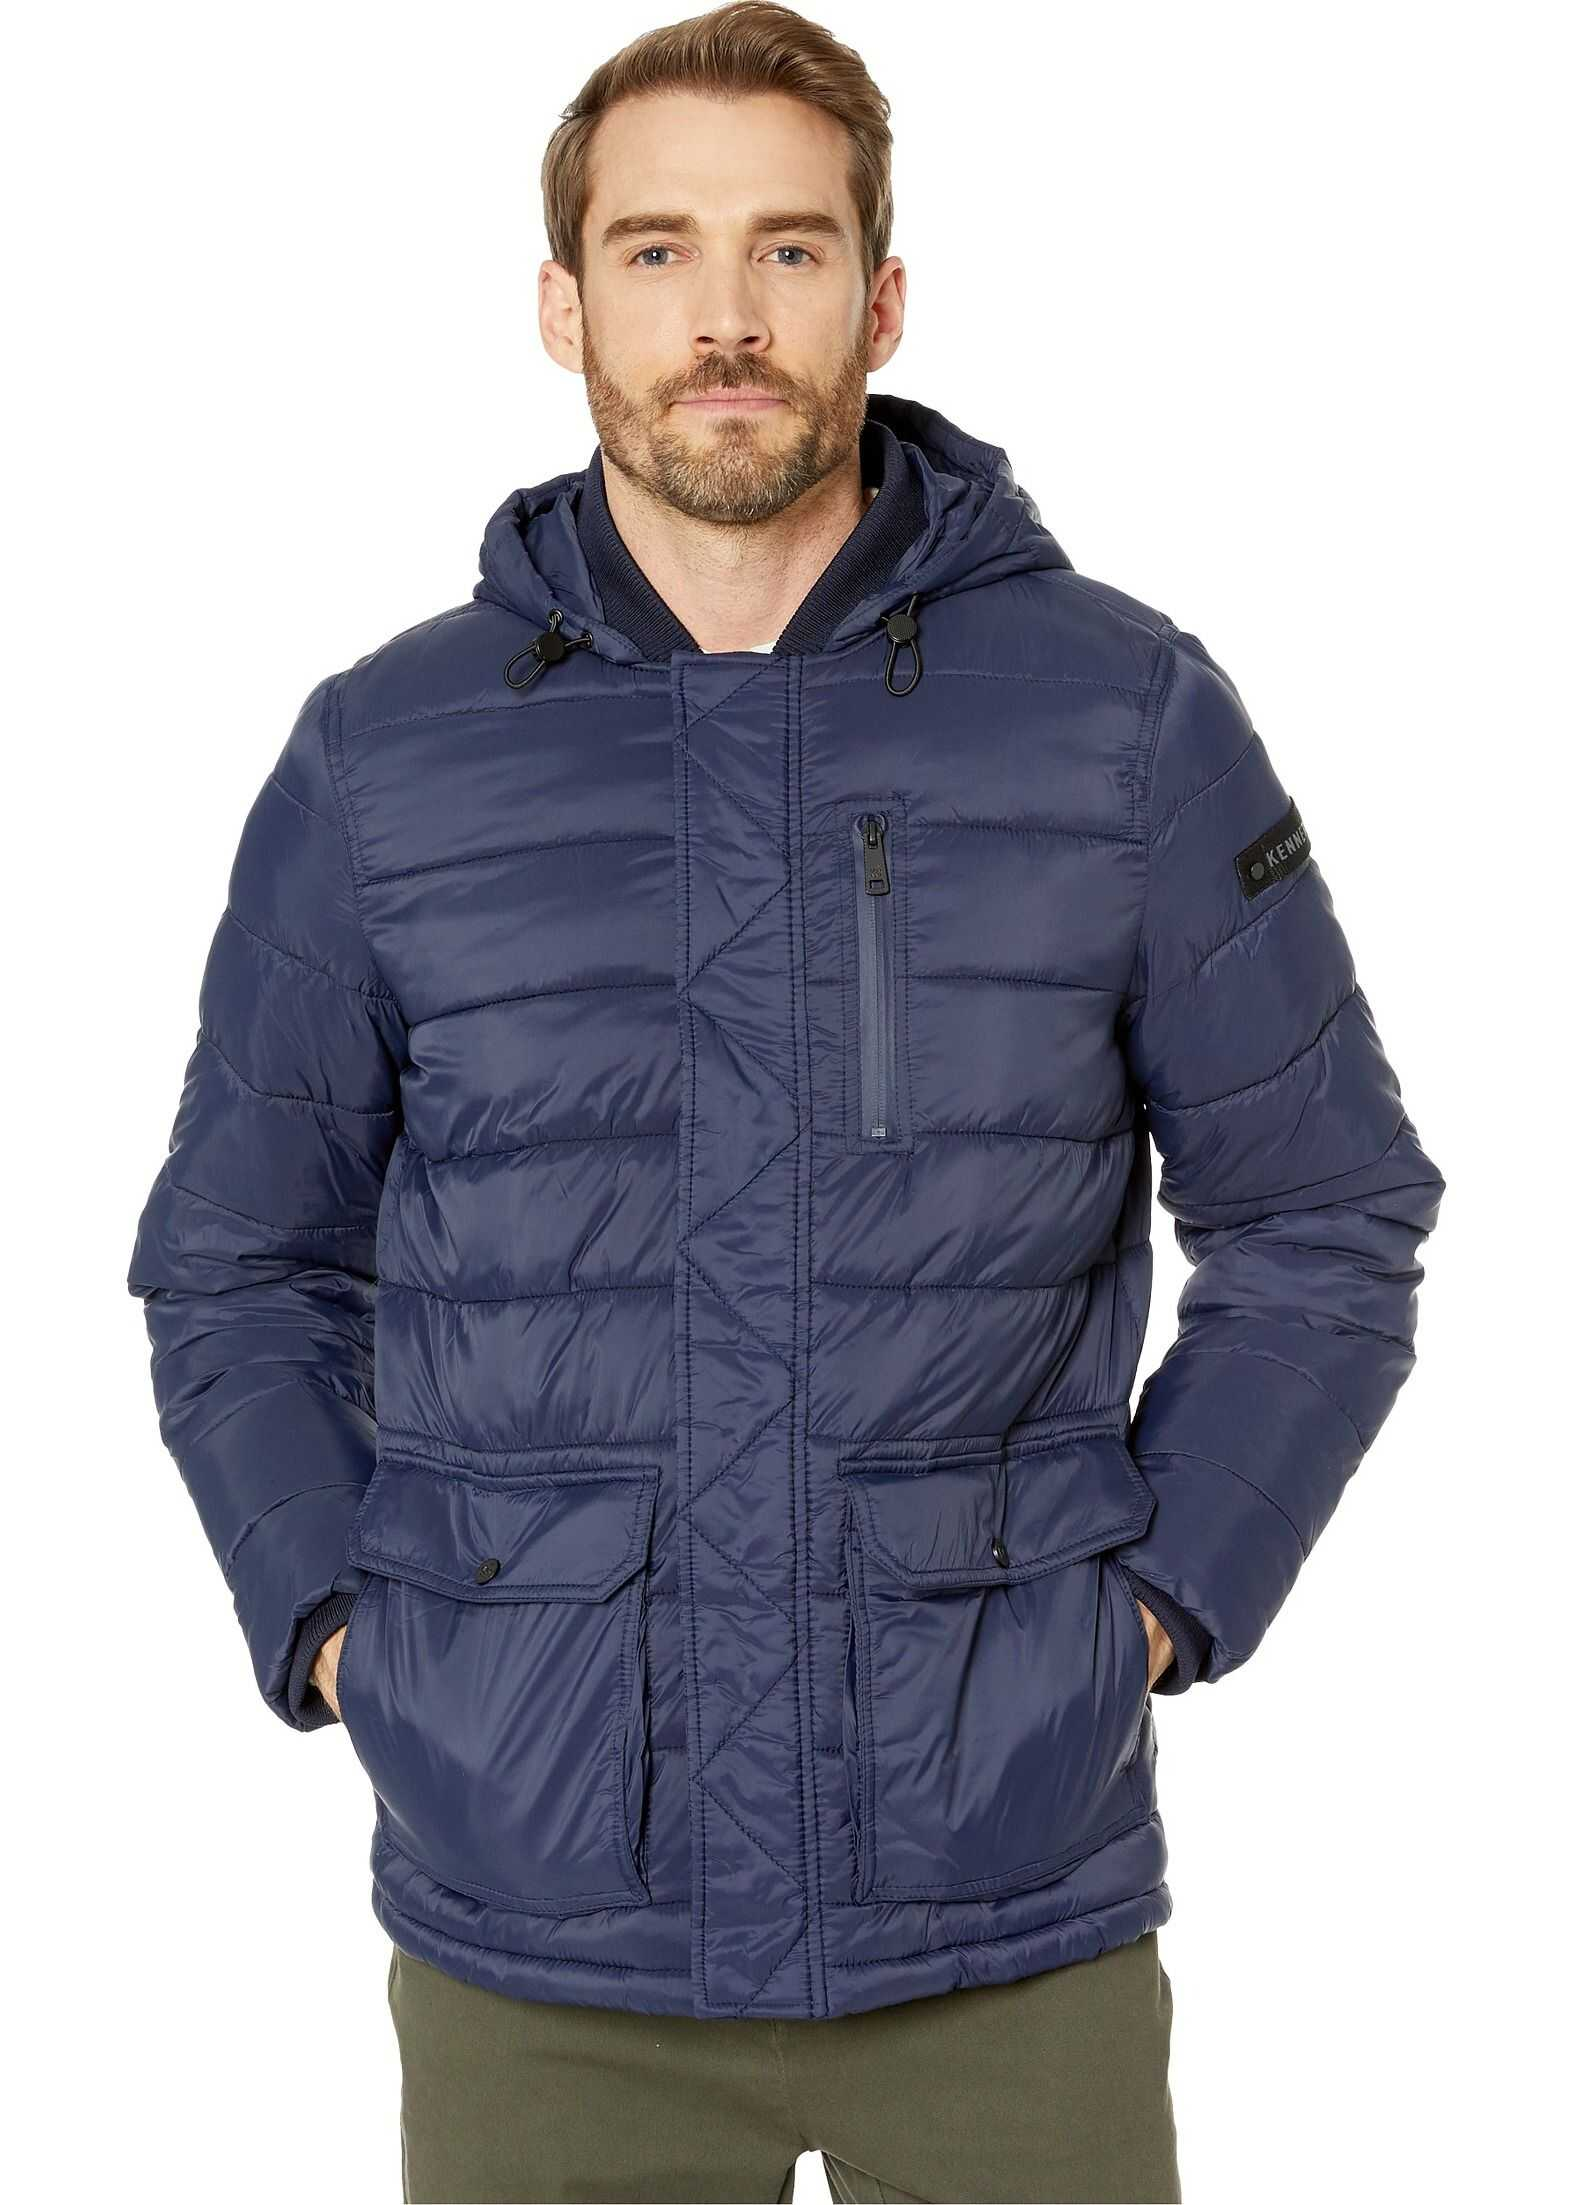 Kenneth Cole New York Hooded Puffer w/ Oversized Pockets Navy